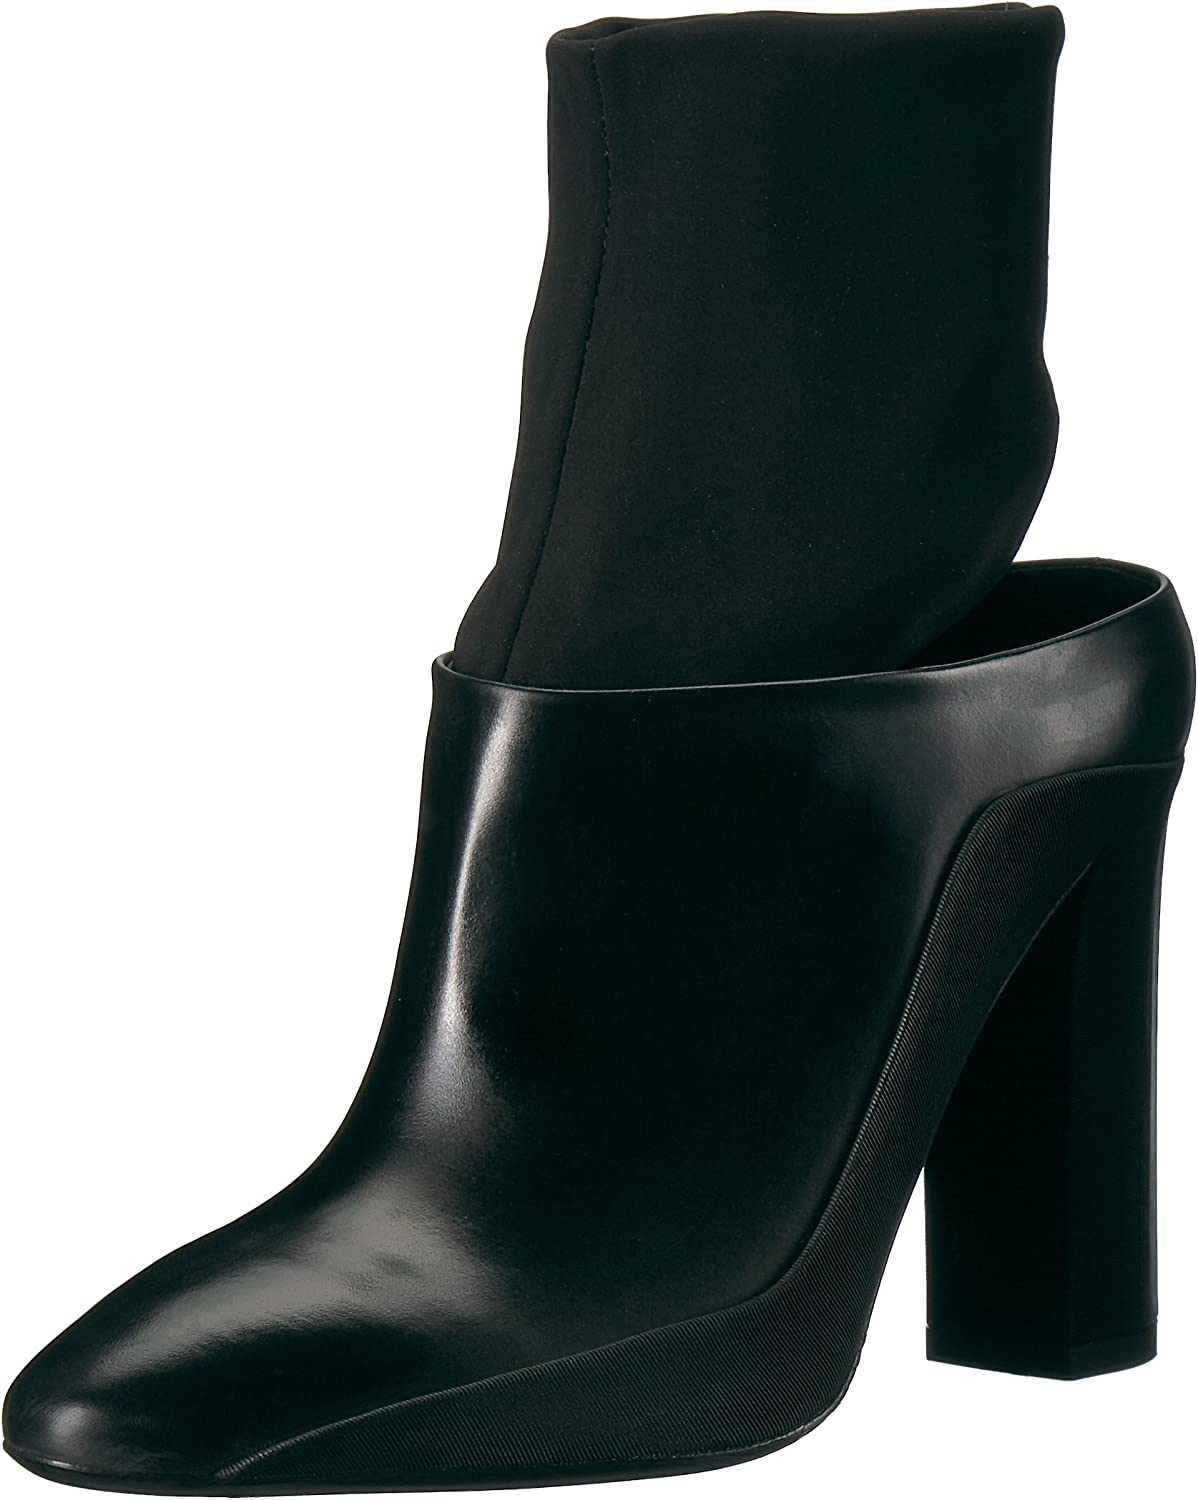 Via Spiga Womens Agyness Bootie Ankle Boot